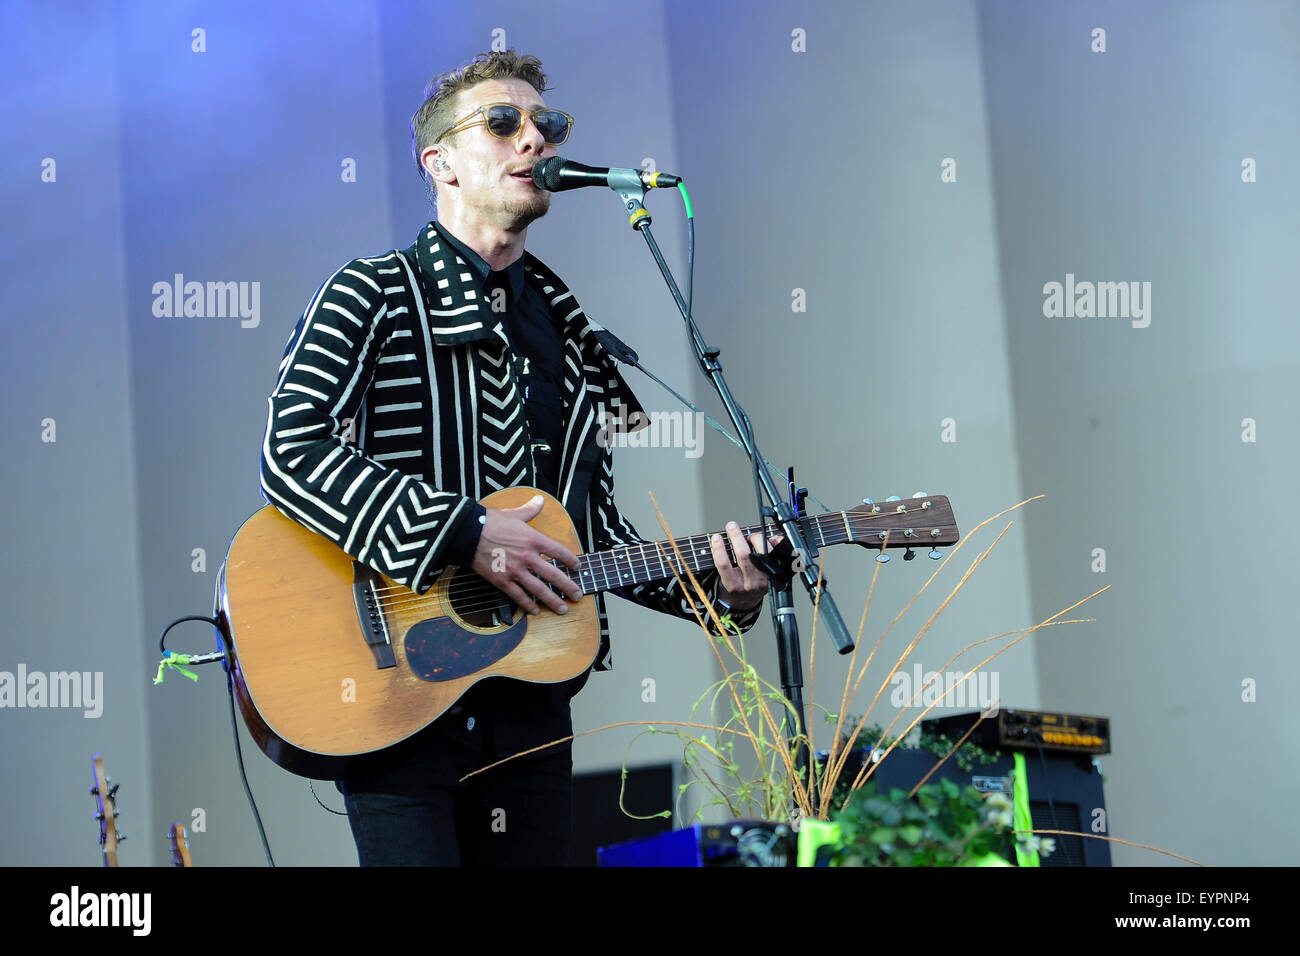 Grant Park. 01st Aug, 2015. August 01, 2015. - Givers performing live during the Lollapalooza Festival 2015 at Grant - Stock Image